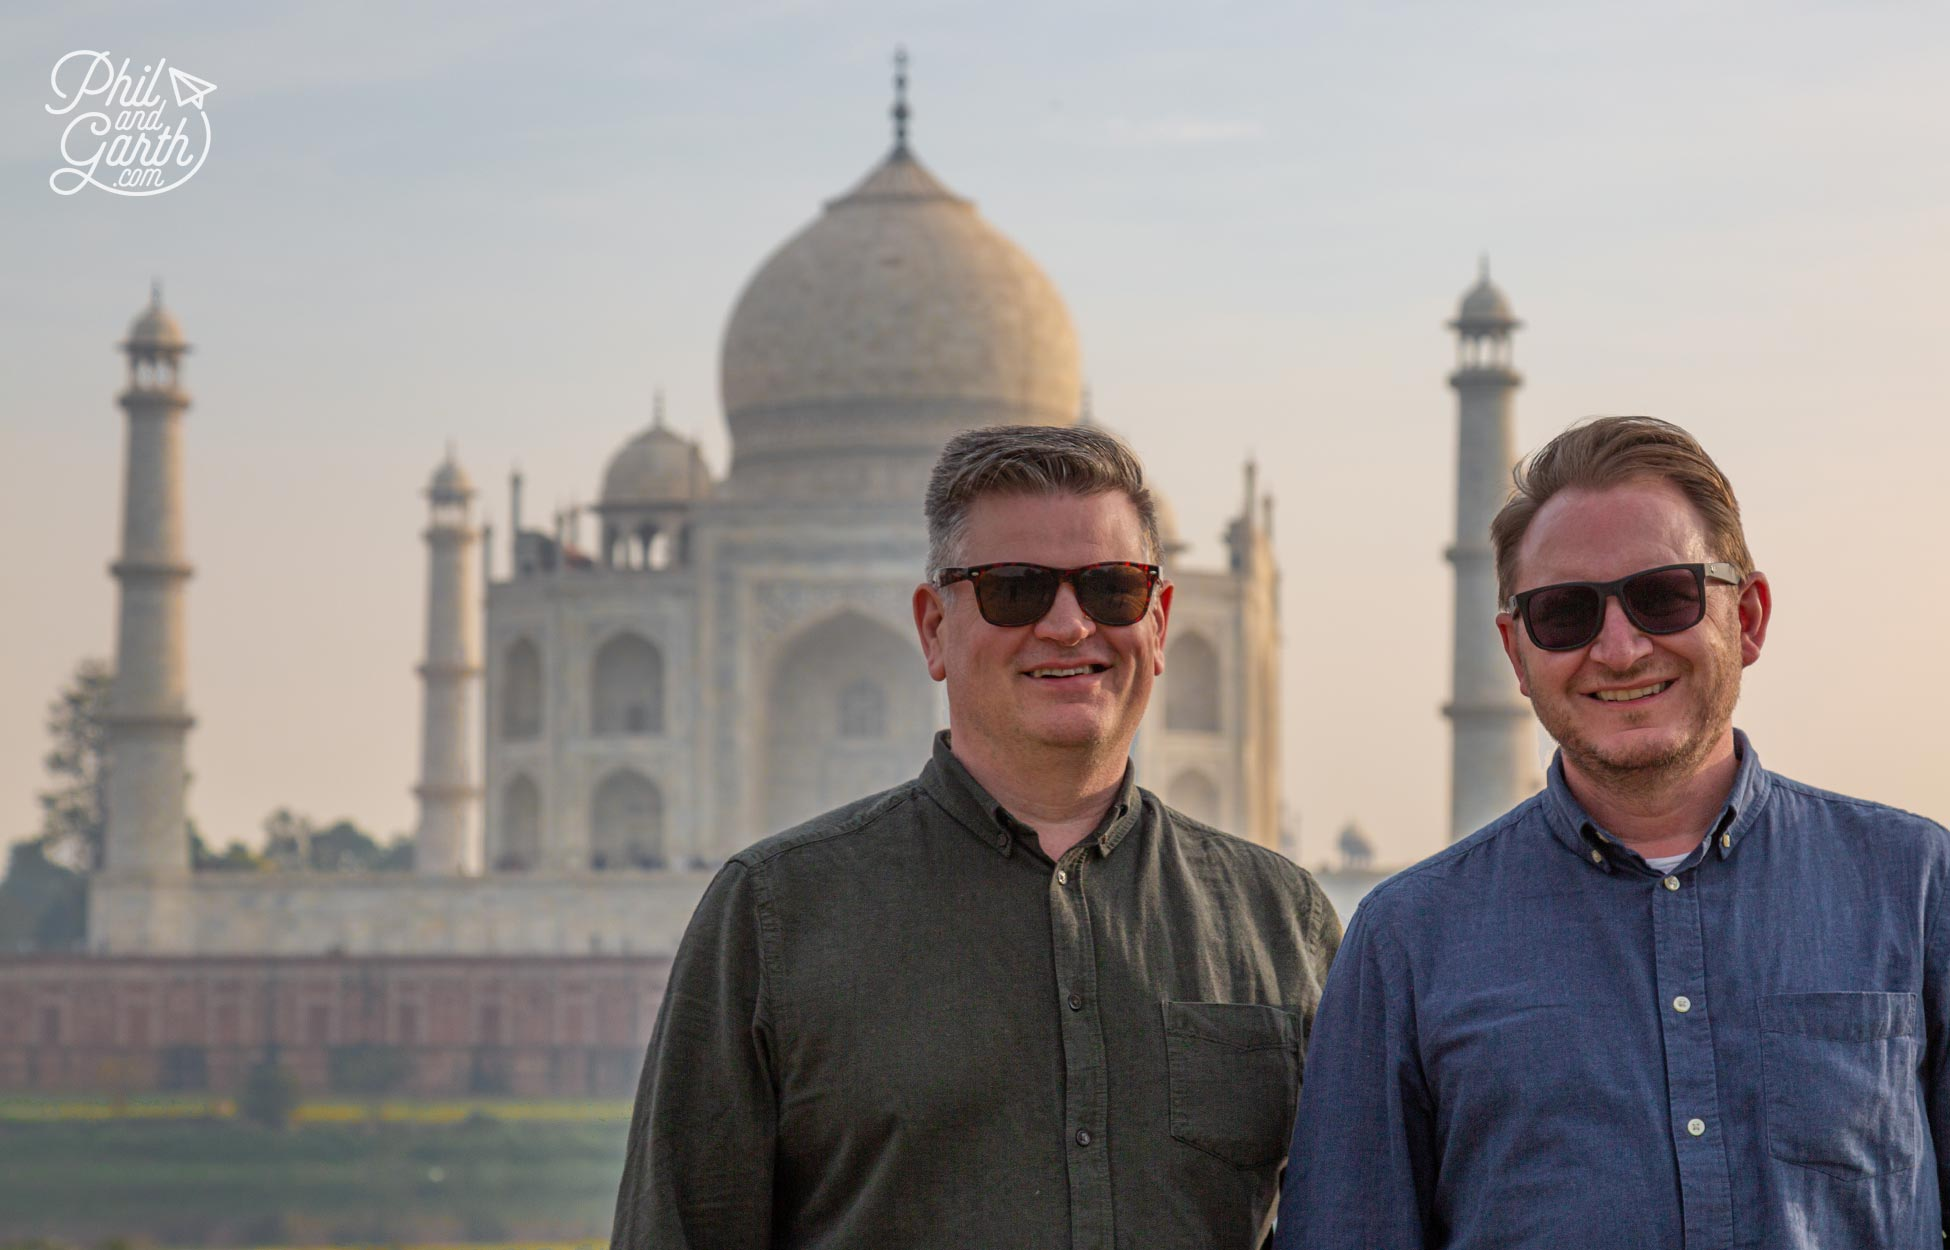 Phil and Garth's Top 5 Agra Itinerary Tips